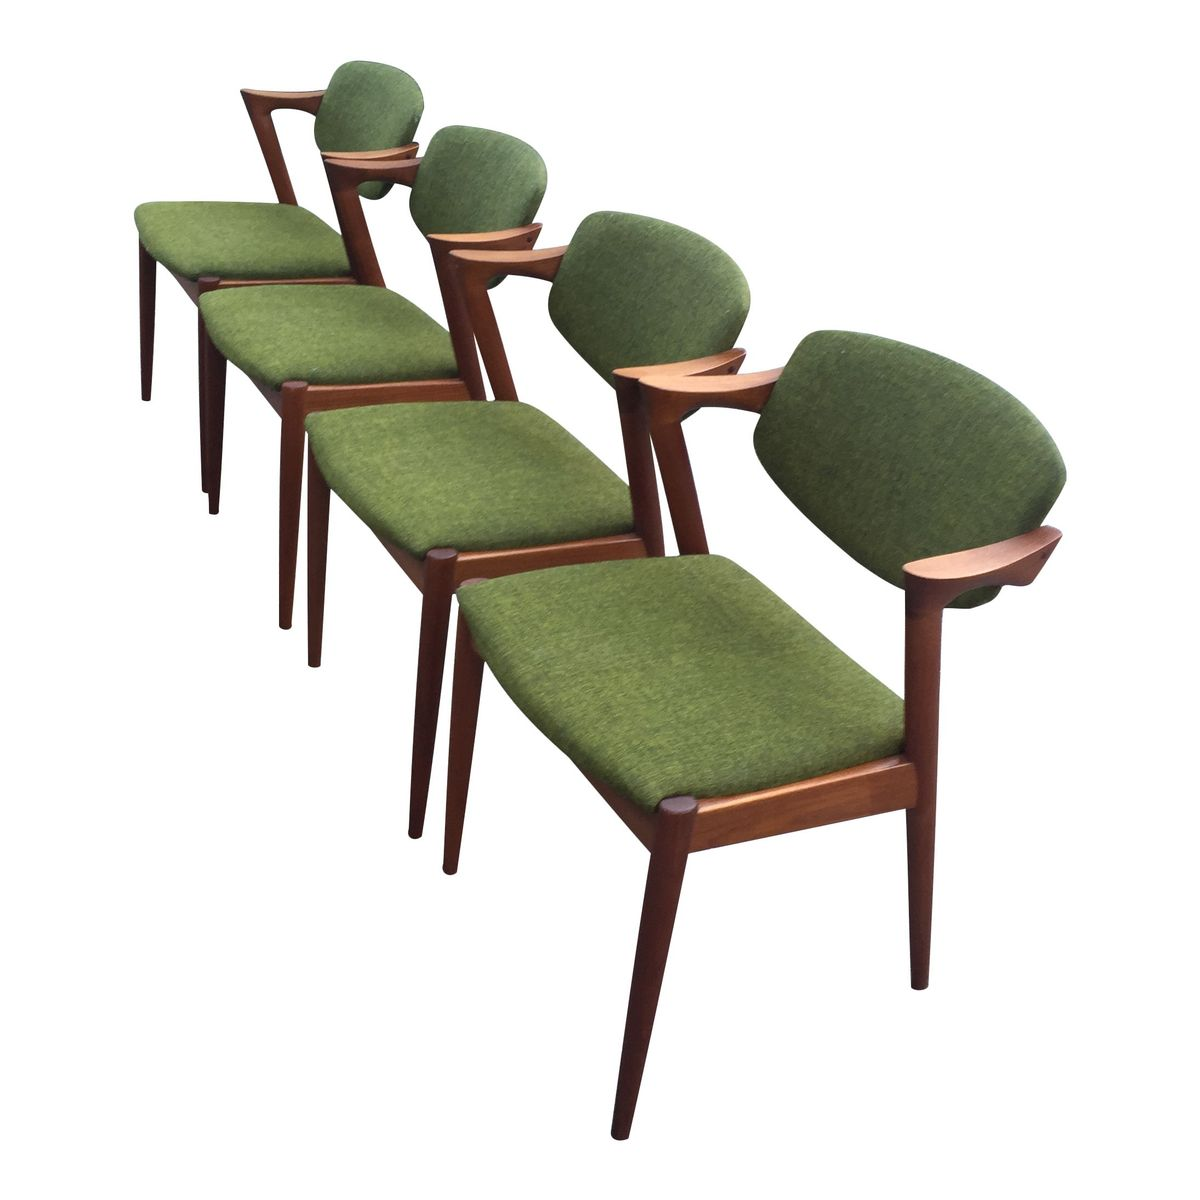 Model 42 teak dining chairs by kai kristiansen for schou andesen m belfabrik set of 4 for sale - Kai kristiansen chairs ...